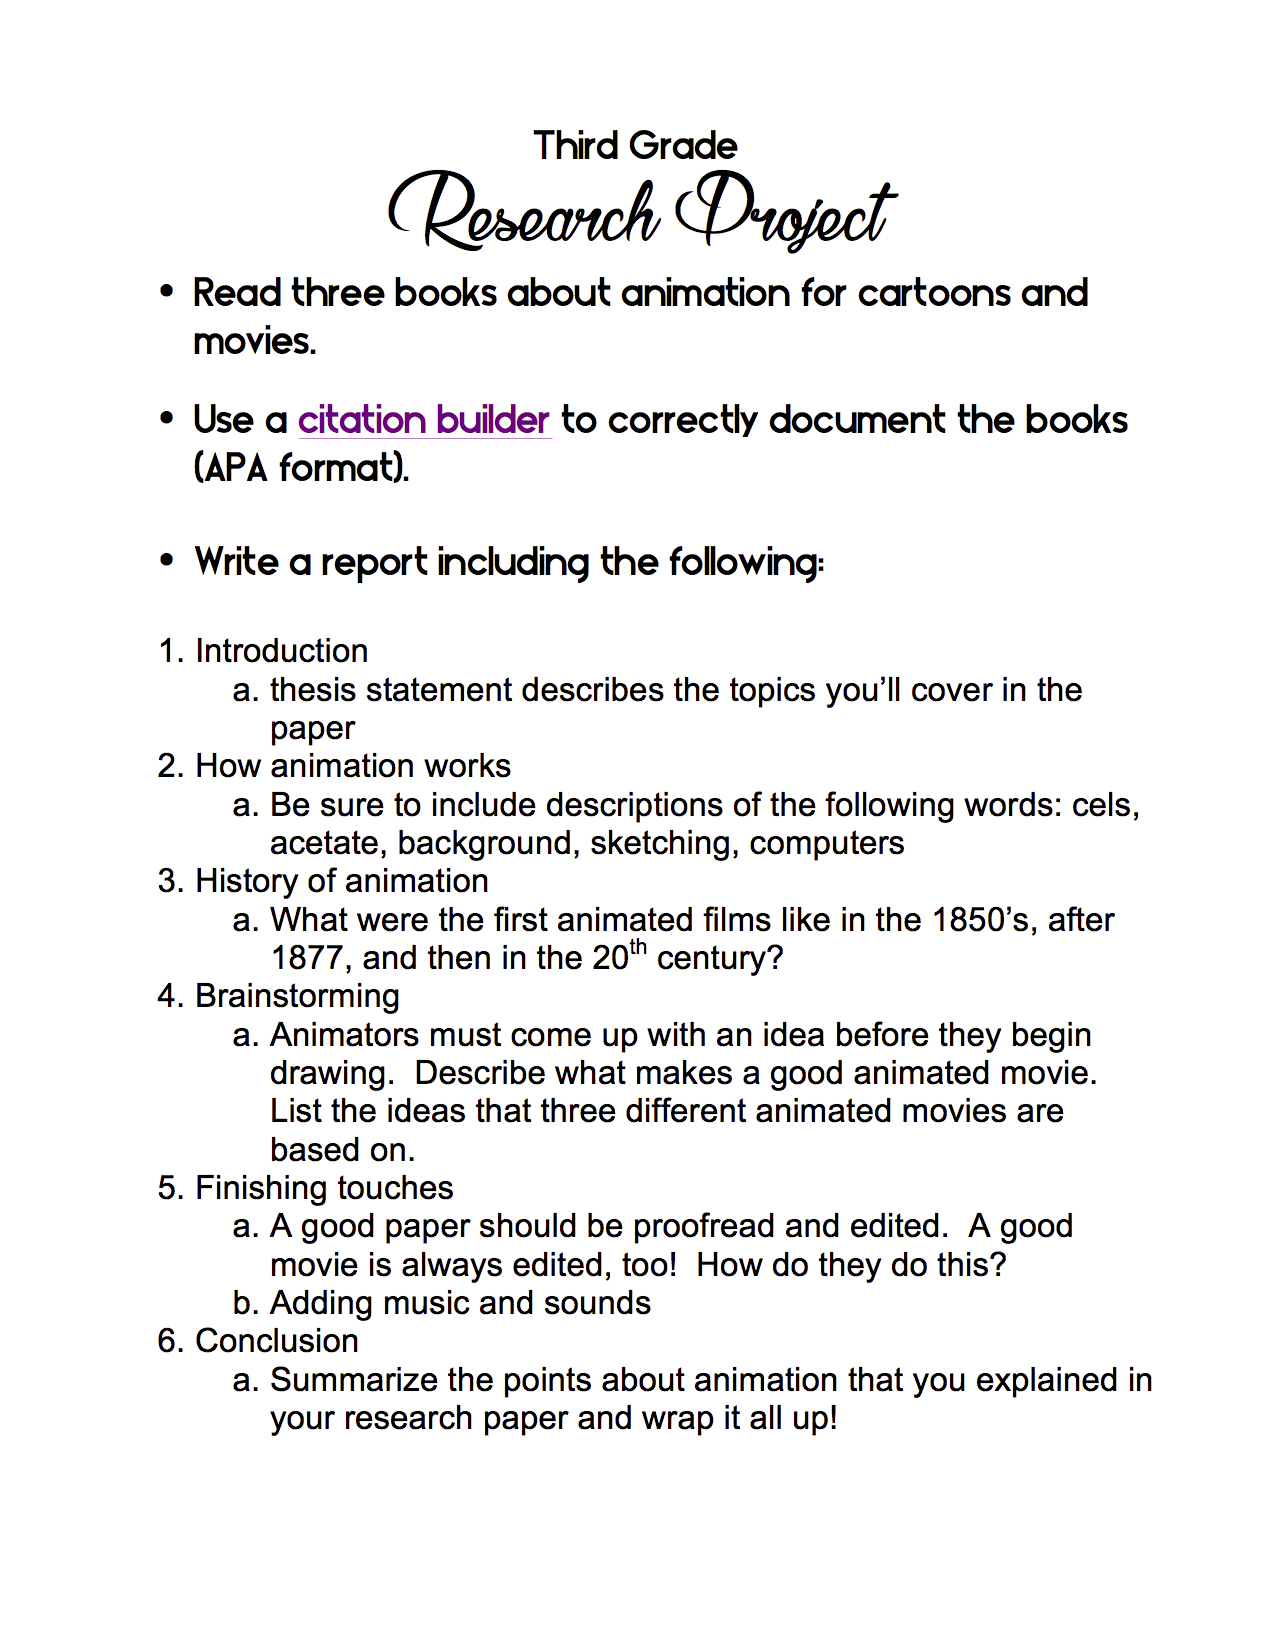 002 Research Paper Cancer Ideas 3rd Grade Shocking Topic Full